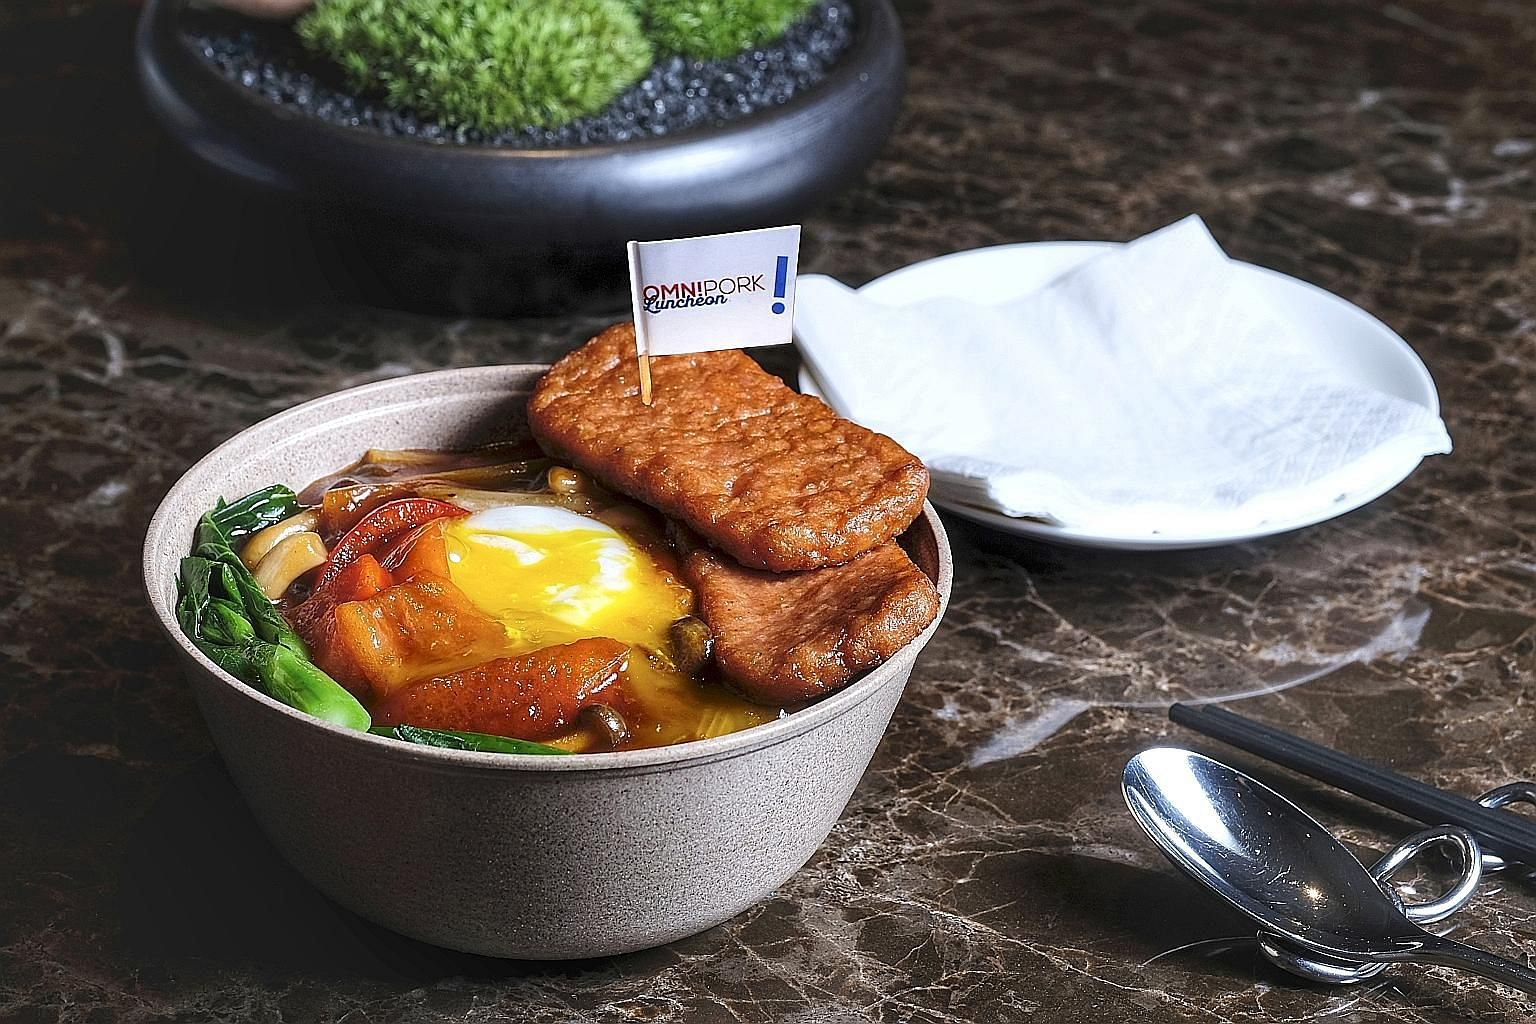 This dish of luncheon meat with egg and rice in spicy tomato sauce is made with OmniMeat luncheon meat. Retail packs of the plant-based meat will be launched in Singapore in September.